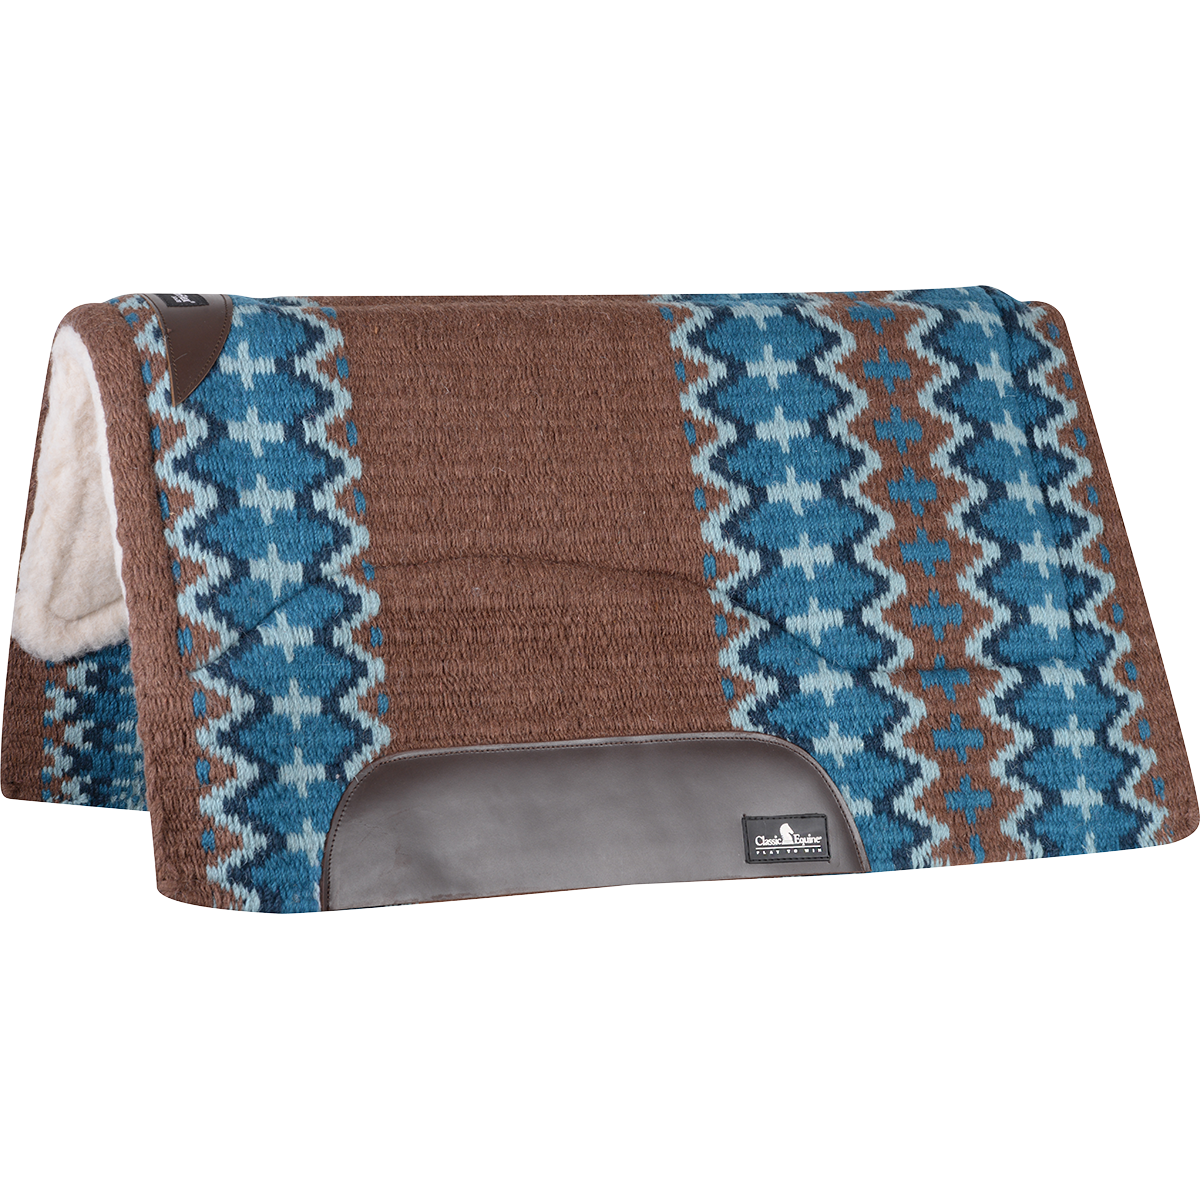 "Classic Equine SensorFlex Wool Top Pad (Merino) 32x34"" (Brown/Navy)"